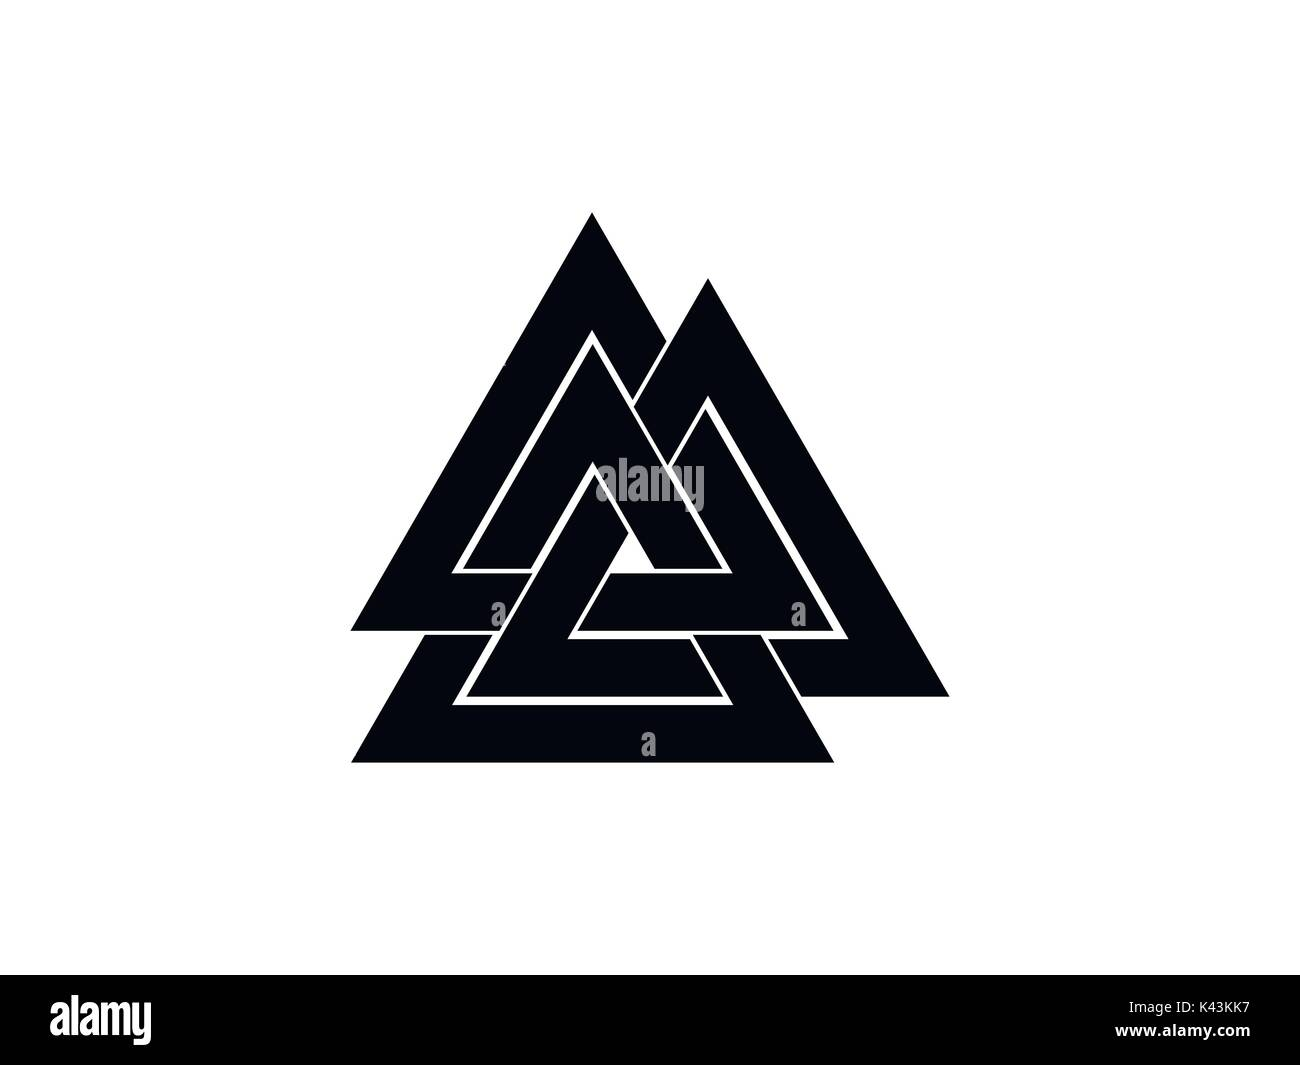 Valknut is a symbol of the worlds end of the tree yggdrasil sign valknut is a symbol of the worlds end of the tree yggdrasil sign of the god odin norse culture triangle logo vector illustration buycottarizona